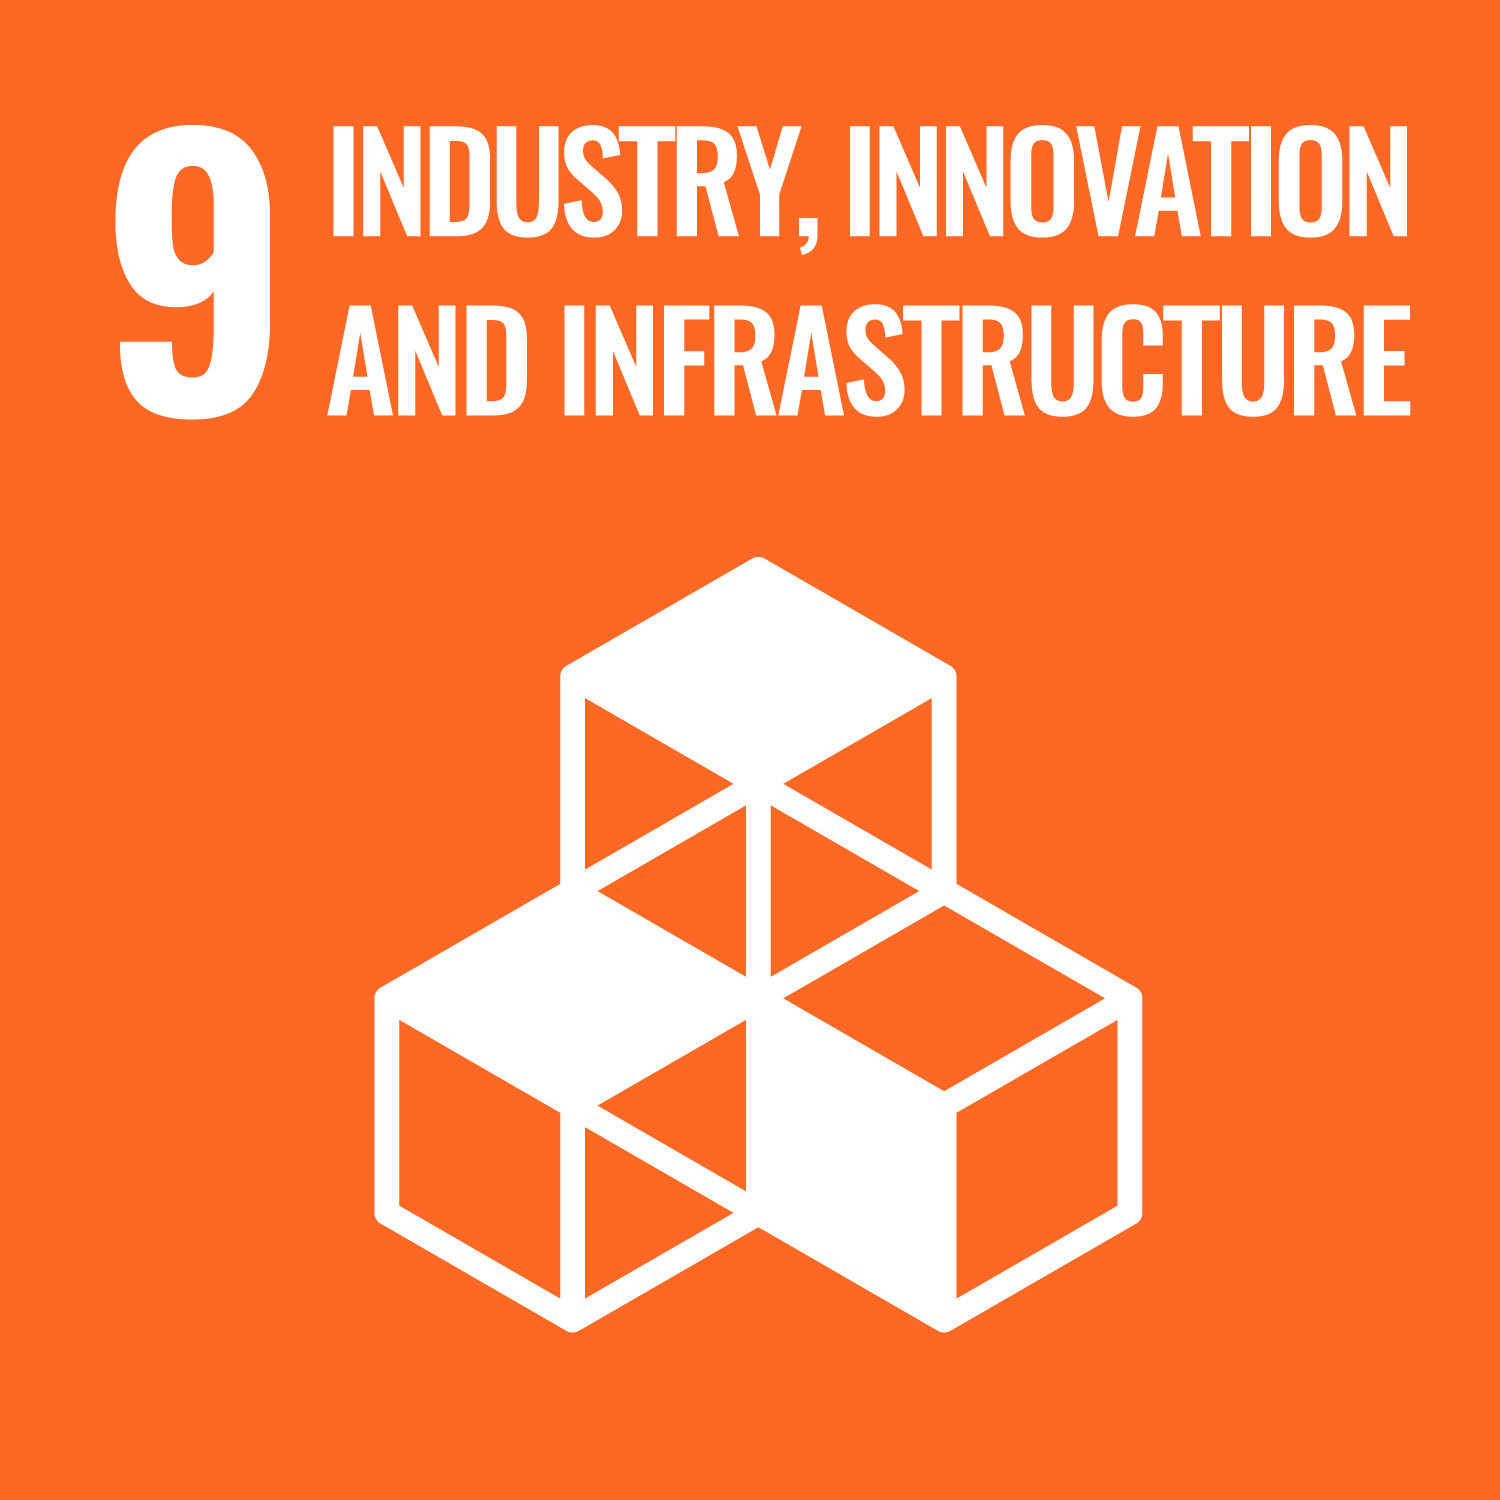 Sustainable Development Goal 9. Build resilient infrastructure, promote sustainable industrialization and foster innovation.